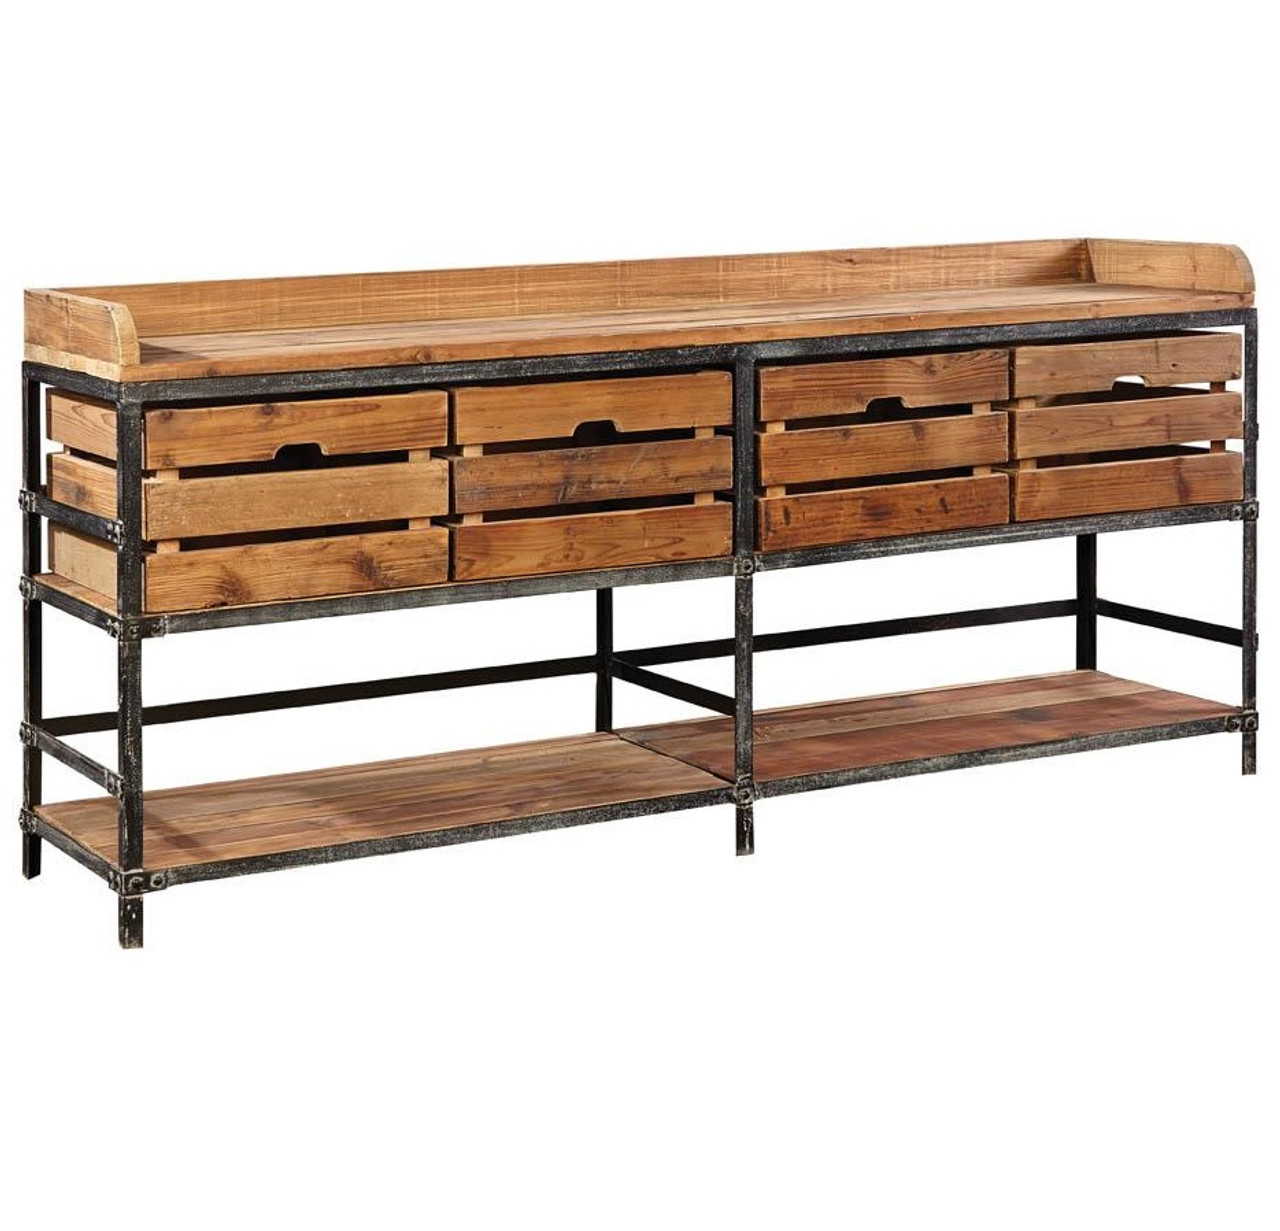 Breeland Industrial Metal Wood Sideboard With Storage Bins Zin Home